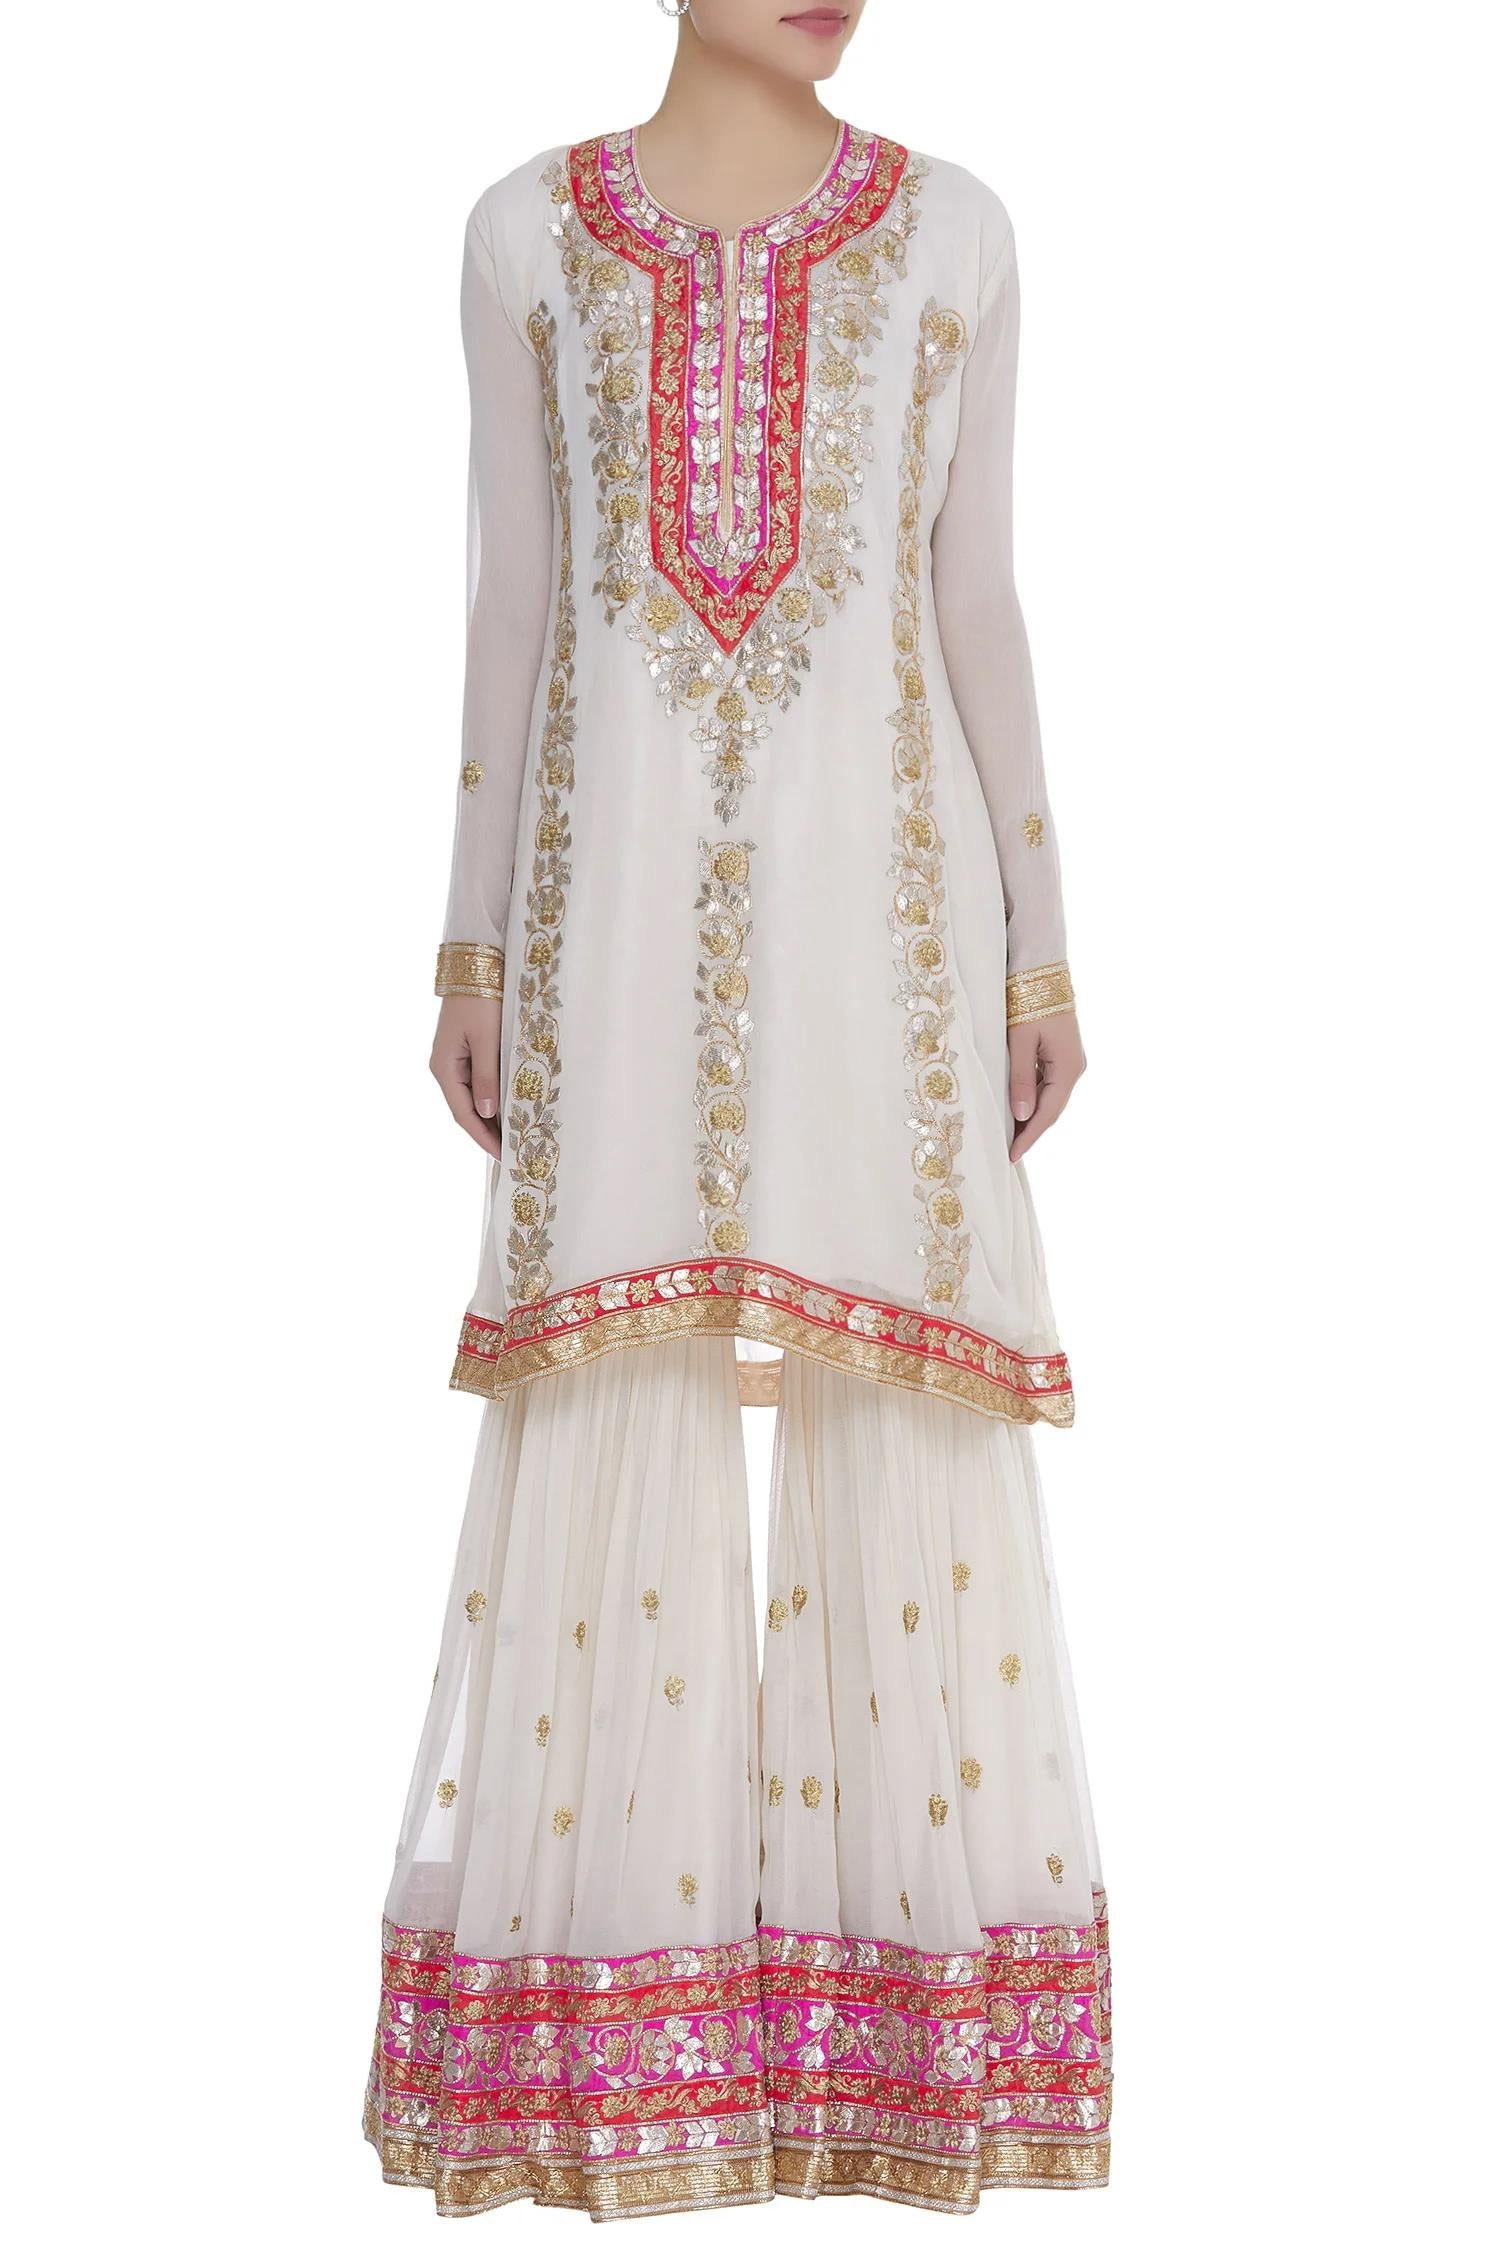 Rent Embroidered Kurta Sharara Set-Women-Glamourental